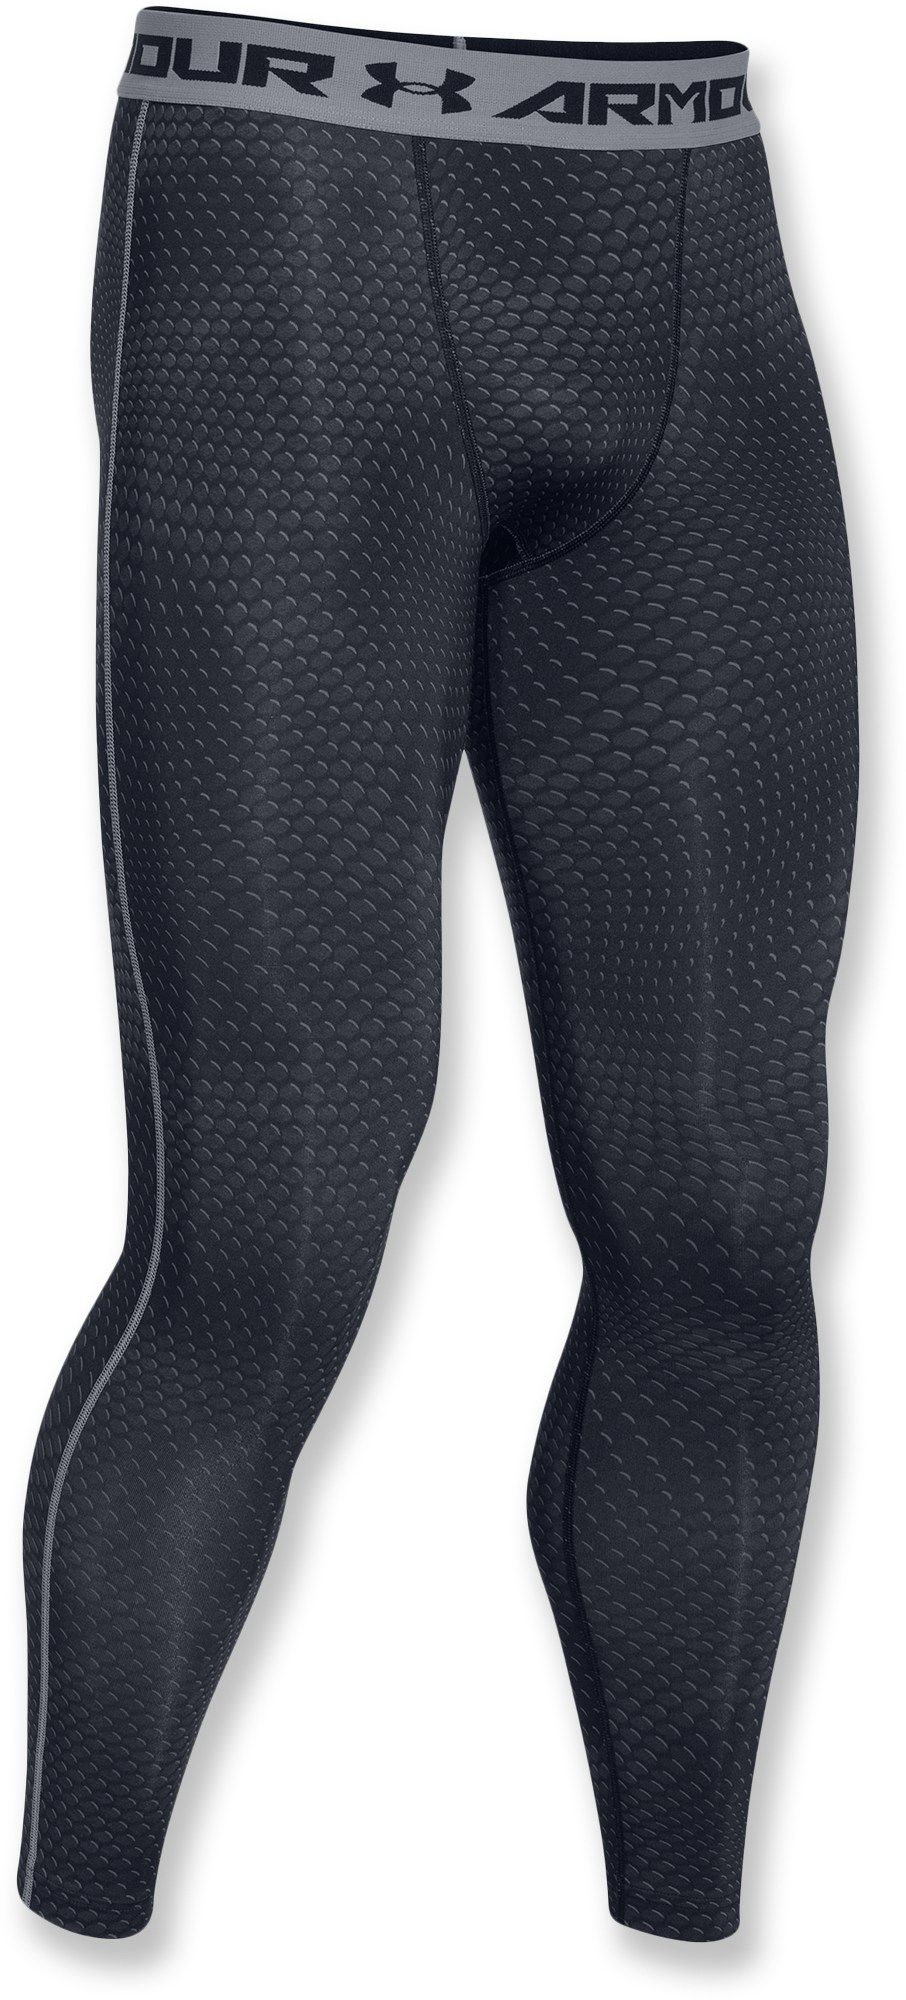 c895311d4b9cd8 Under Armour Compression Print Leggings - Men's | REI Co-op ...